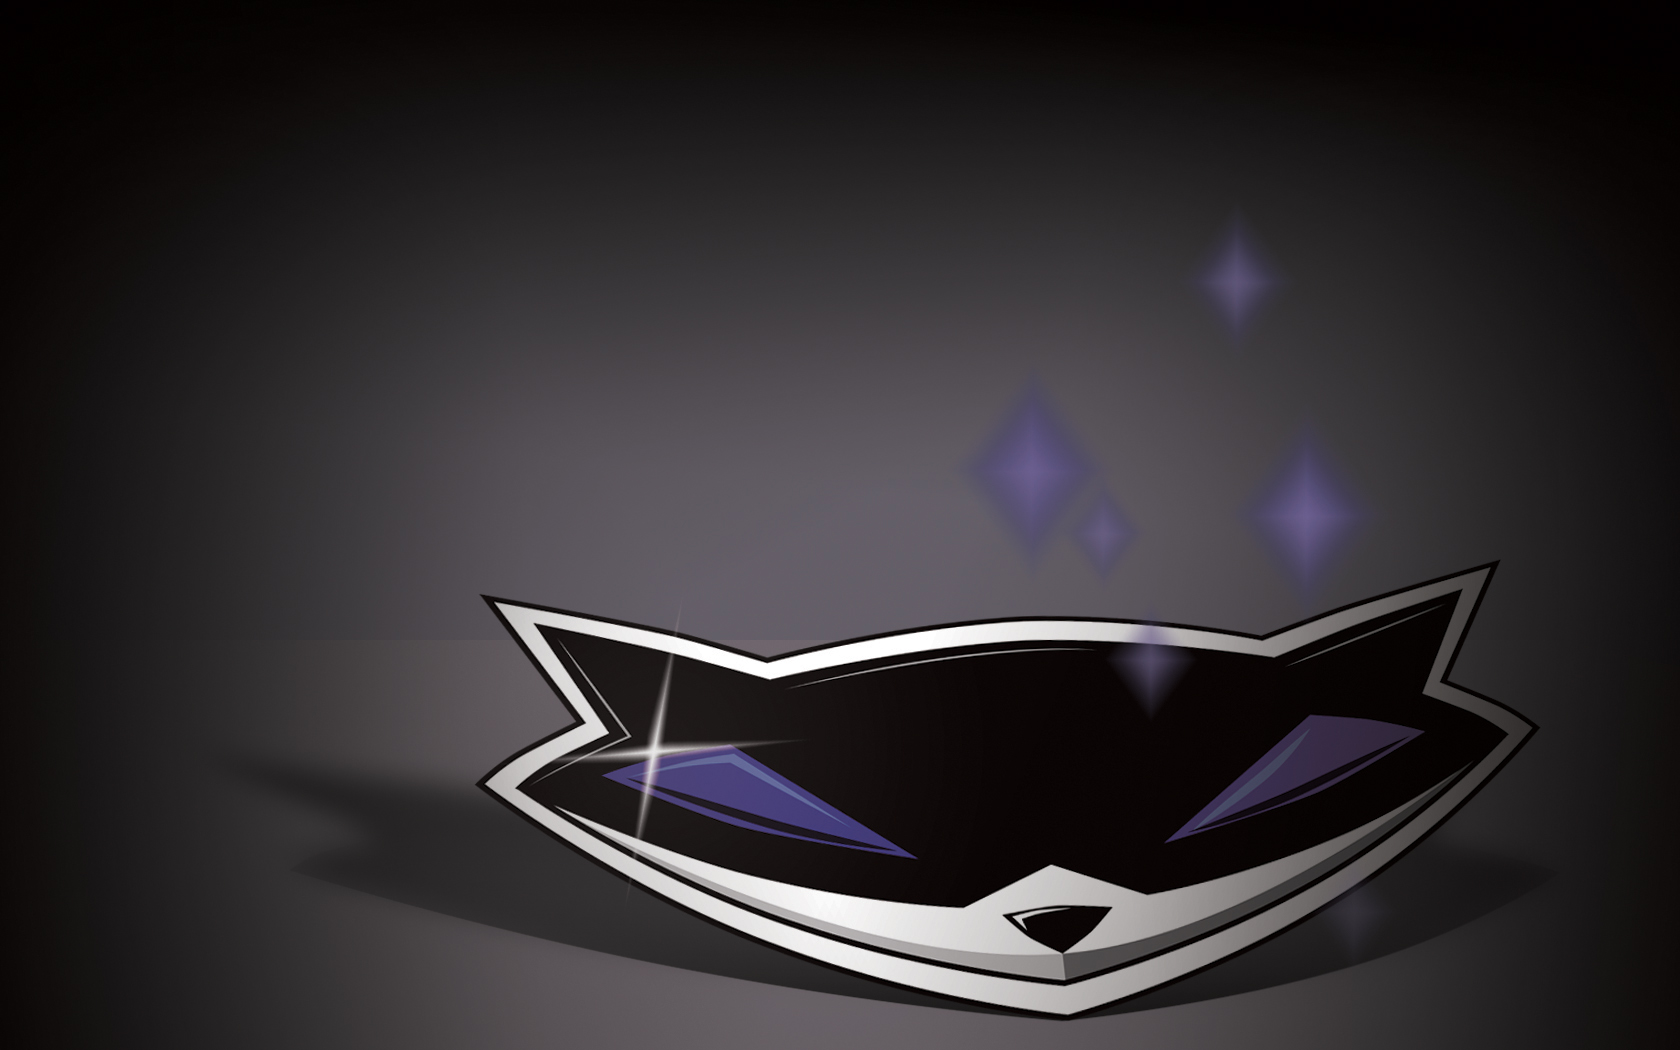 Sly Cooper logo background by MorganJNail 1680x1050